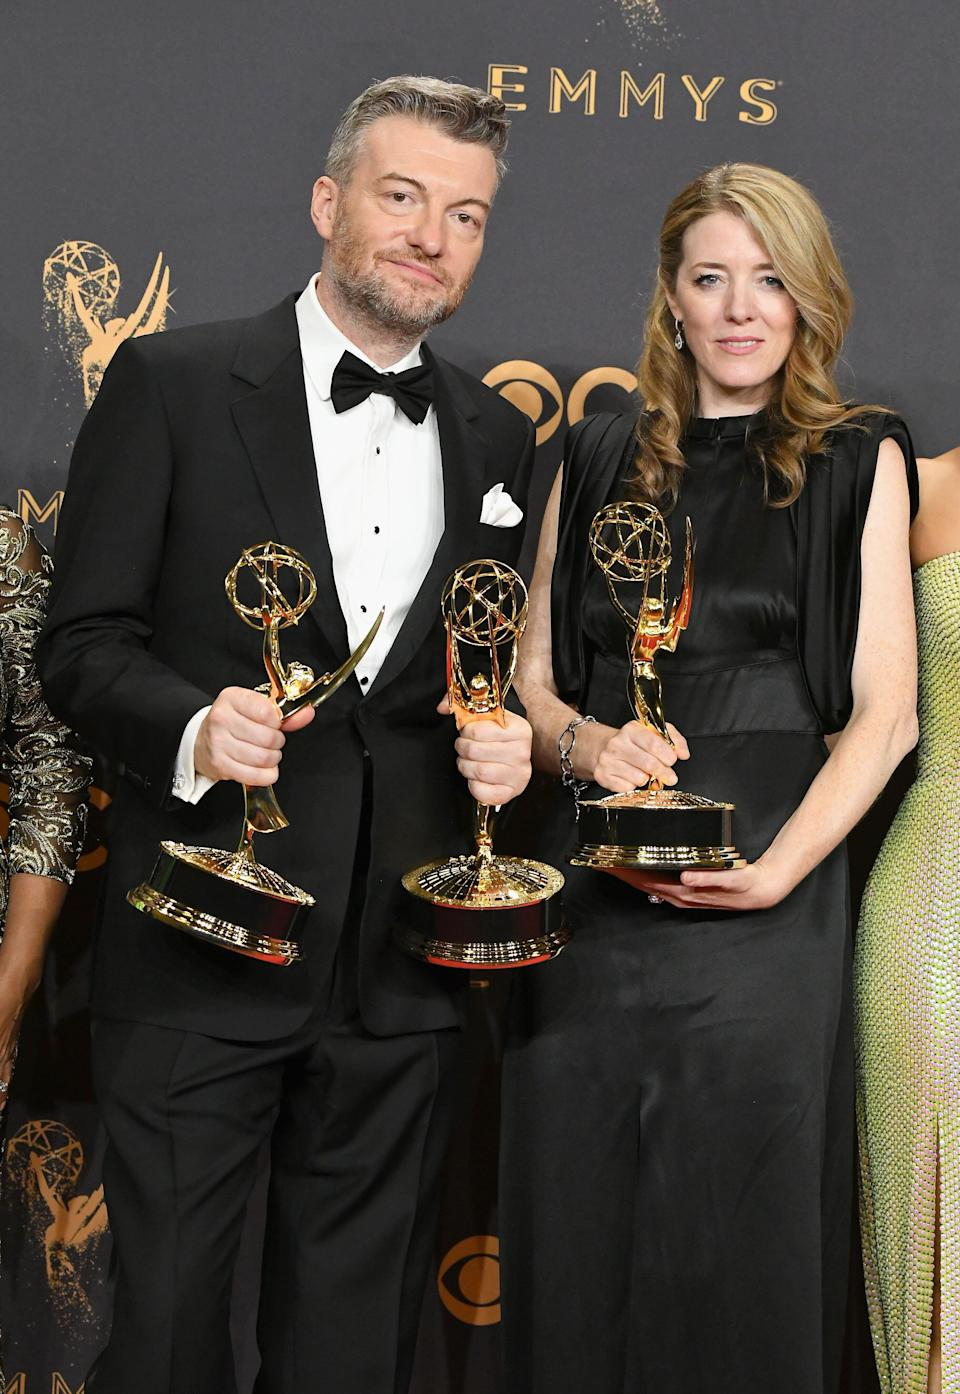 LOS ANGELES, CA - SEPTEMBER 17:  Producers Charlie Brooker (L) and Annabel Jones, winners of the award for Outstanding Television Movie for 'Black Mirror,' poses in the press room during the 69th Annual Primetime Emmy Awards at Microsoft Theater on September 17, 2017 in Los Angeles, California.  (Photo by Steve Granitz/WireImage)